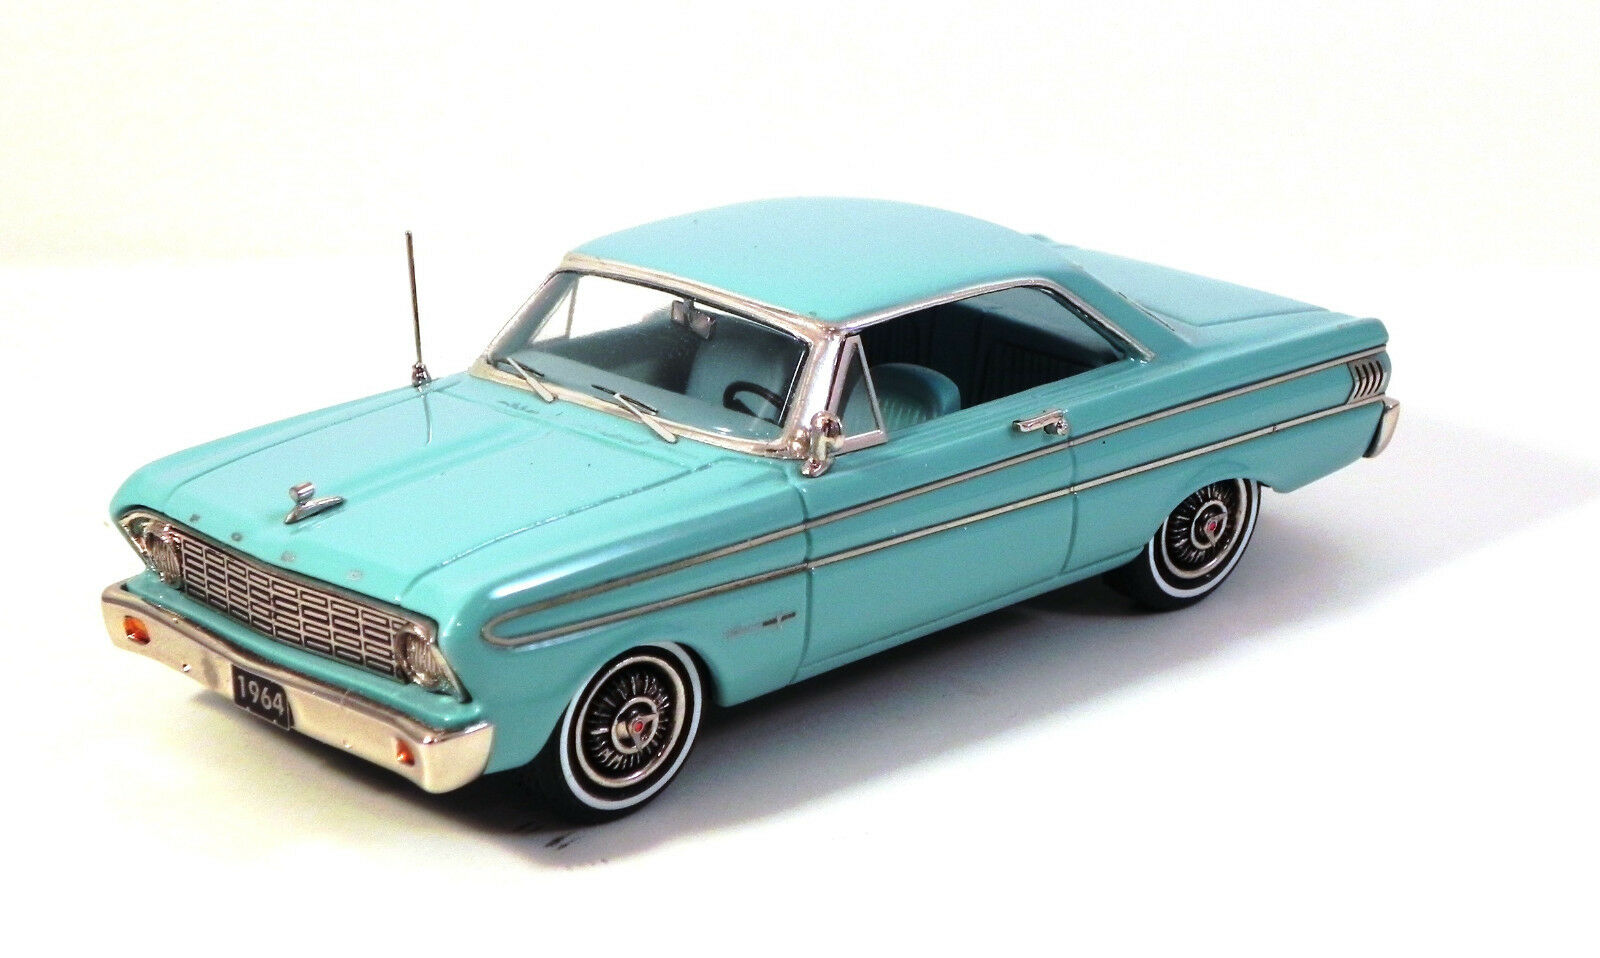 HIGHWAY TRAVELERS 1964 FORD FALCON FUTURA SPRINT HT TURQUOISE  HWT 112